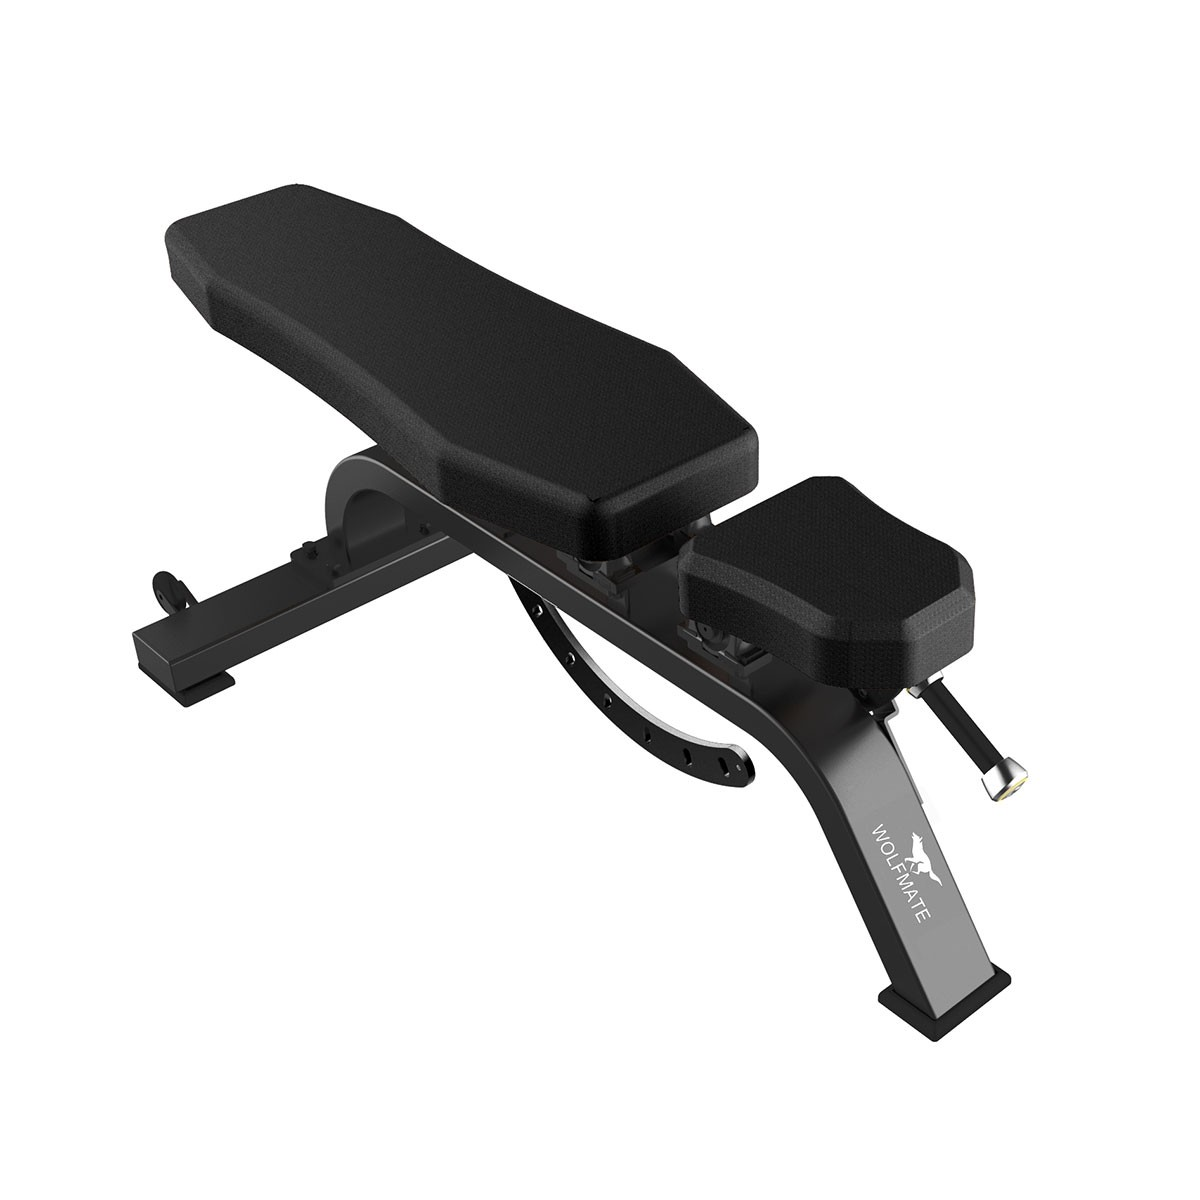 Wolfmate MND-F39 Ajustable Weight Bench (MND-F39)